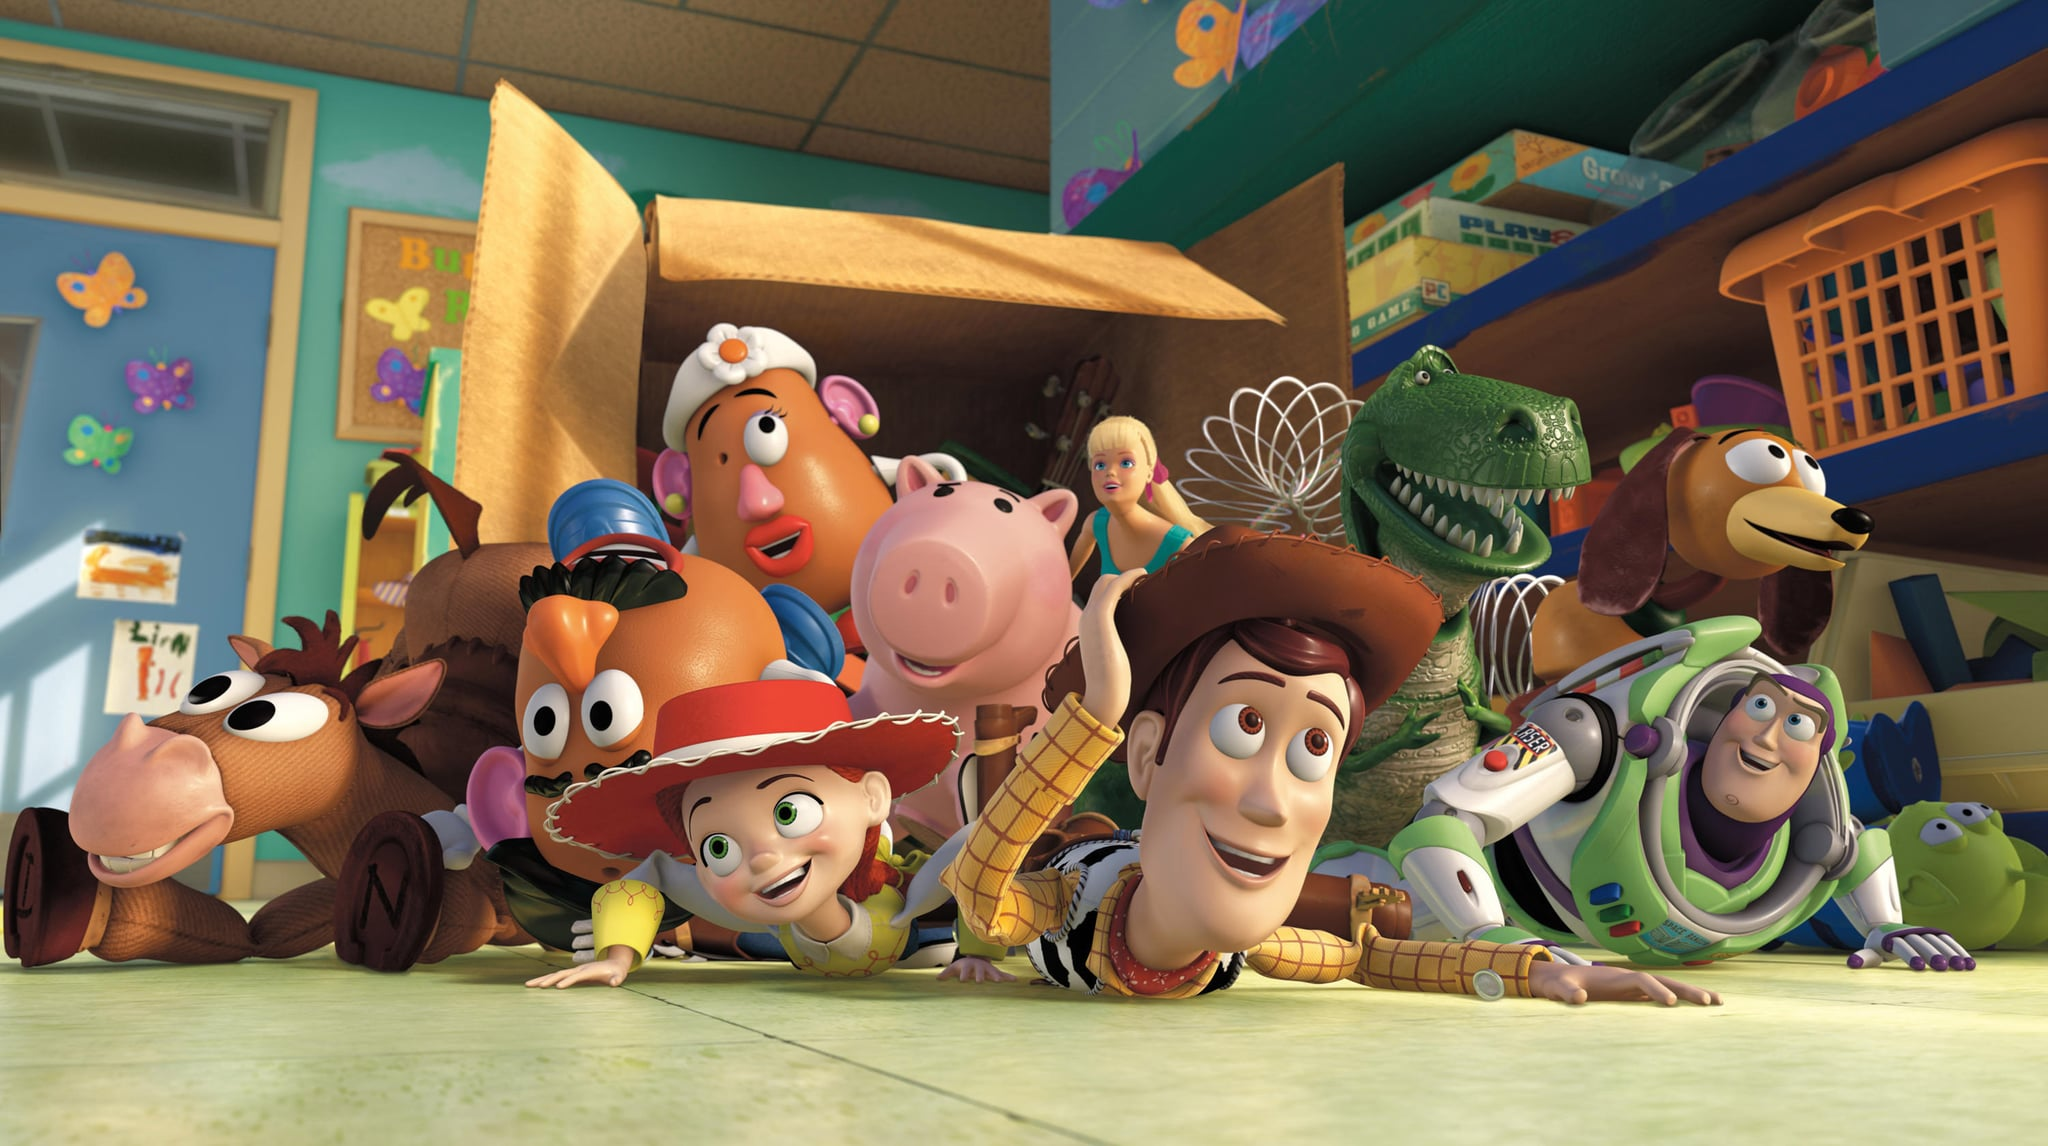 TOY STORY 3, Mr. Potato Head (second from left, voice: Don Rickles), Jessie (left of center, voice: Joan Cusack), Woody (right of center, voice: Tom Hanks), Buzz Lightyear (front right, voice: Tim Allen), 2010. Buena Vista Pictures/courtesy Everett Collection